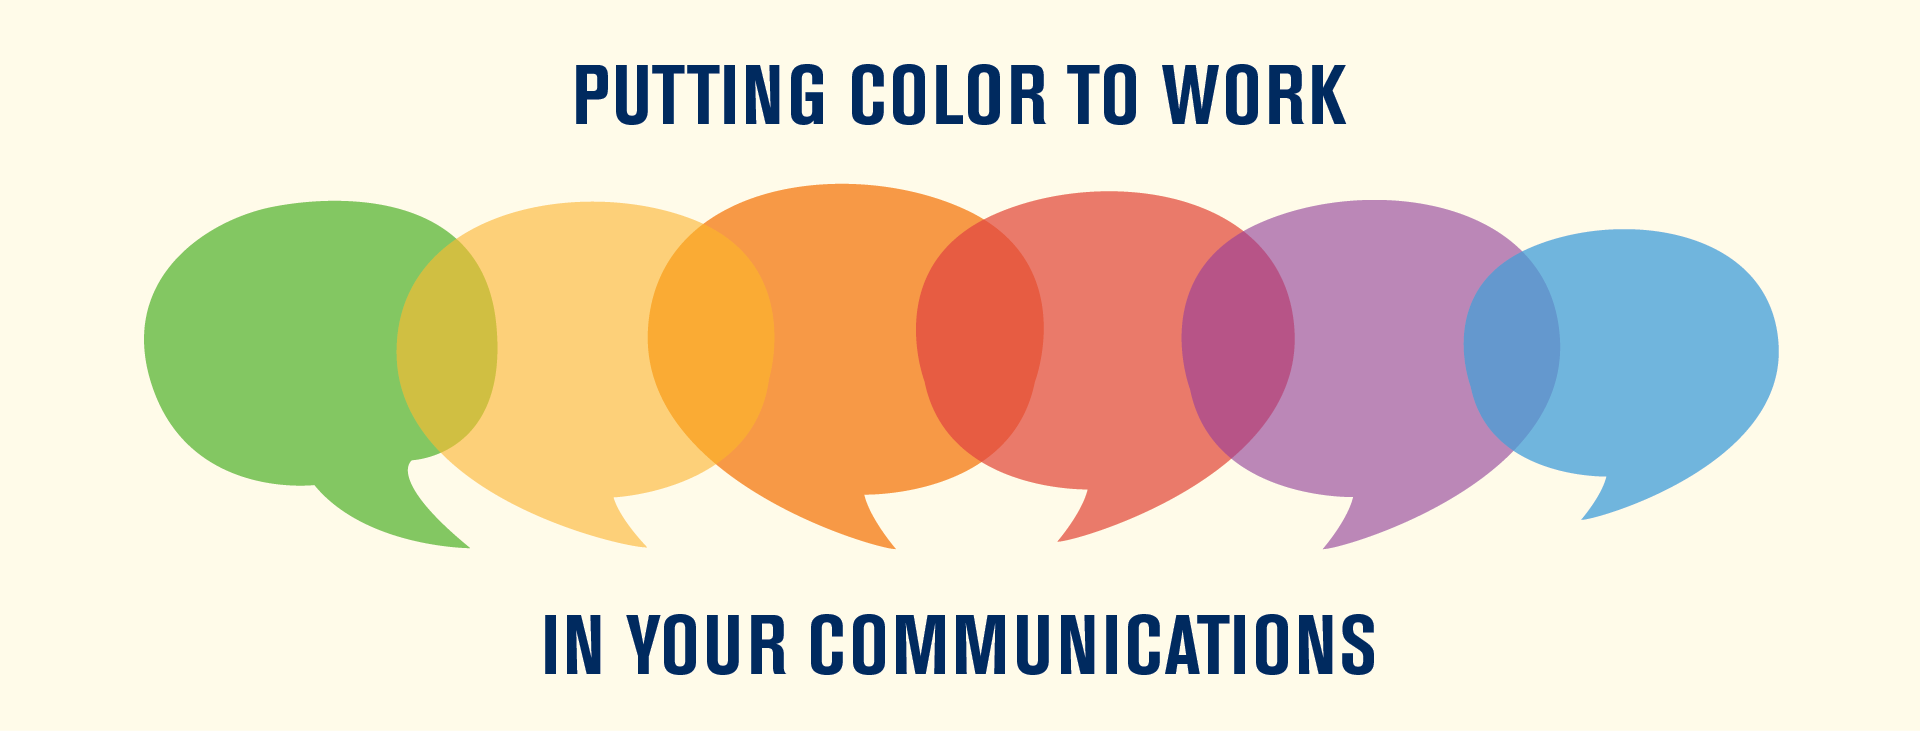 clipart stock Six Tips for Putting Color to Work in Your Communications